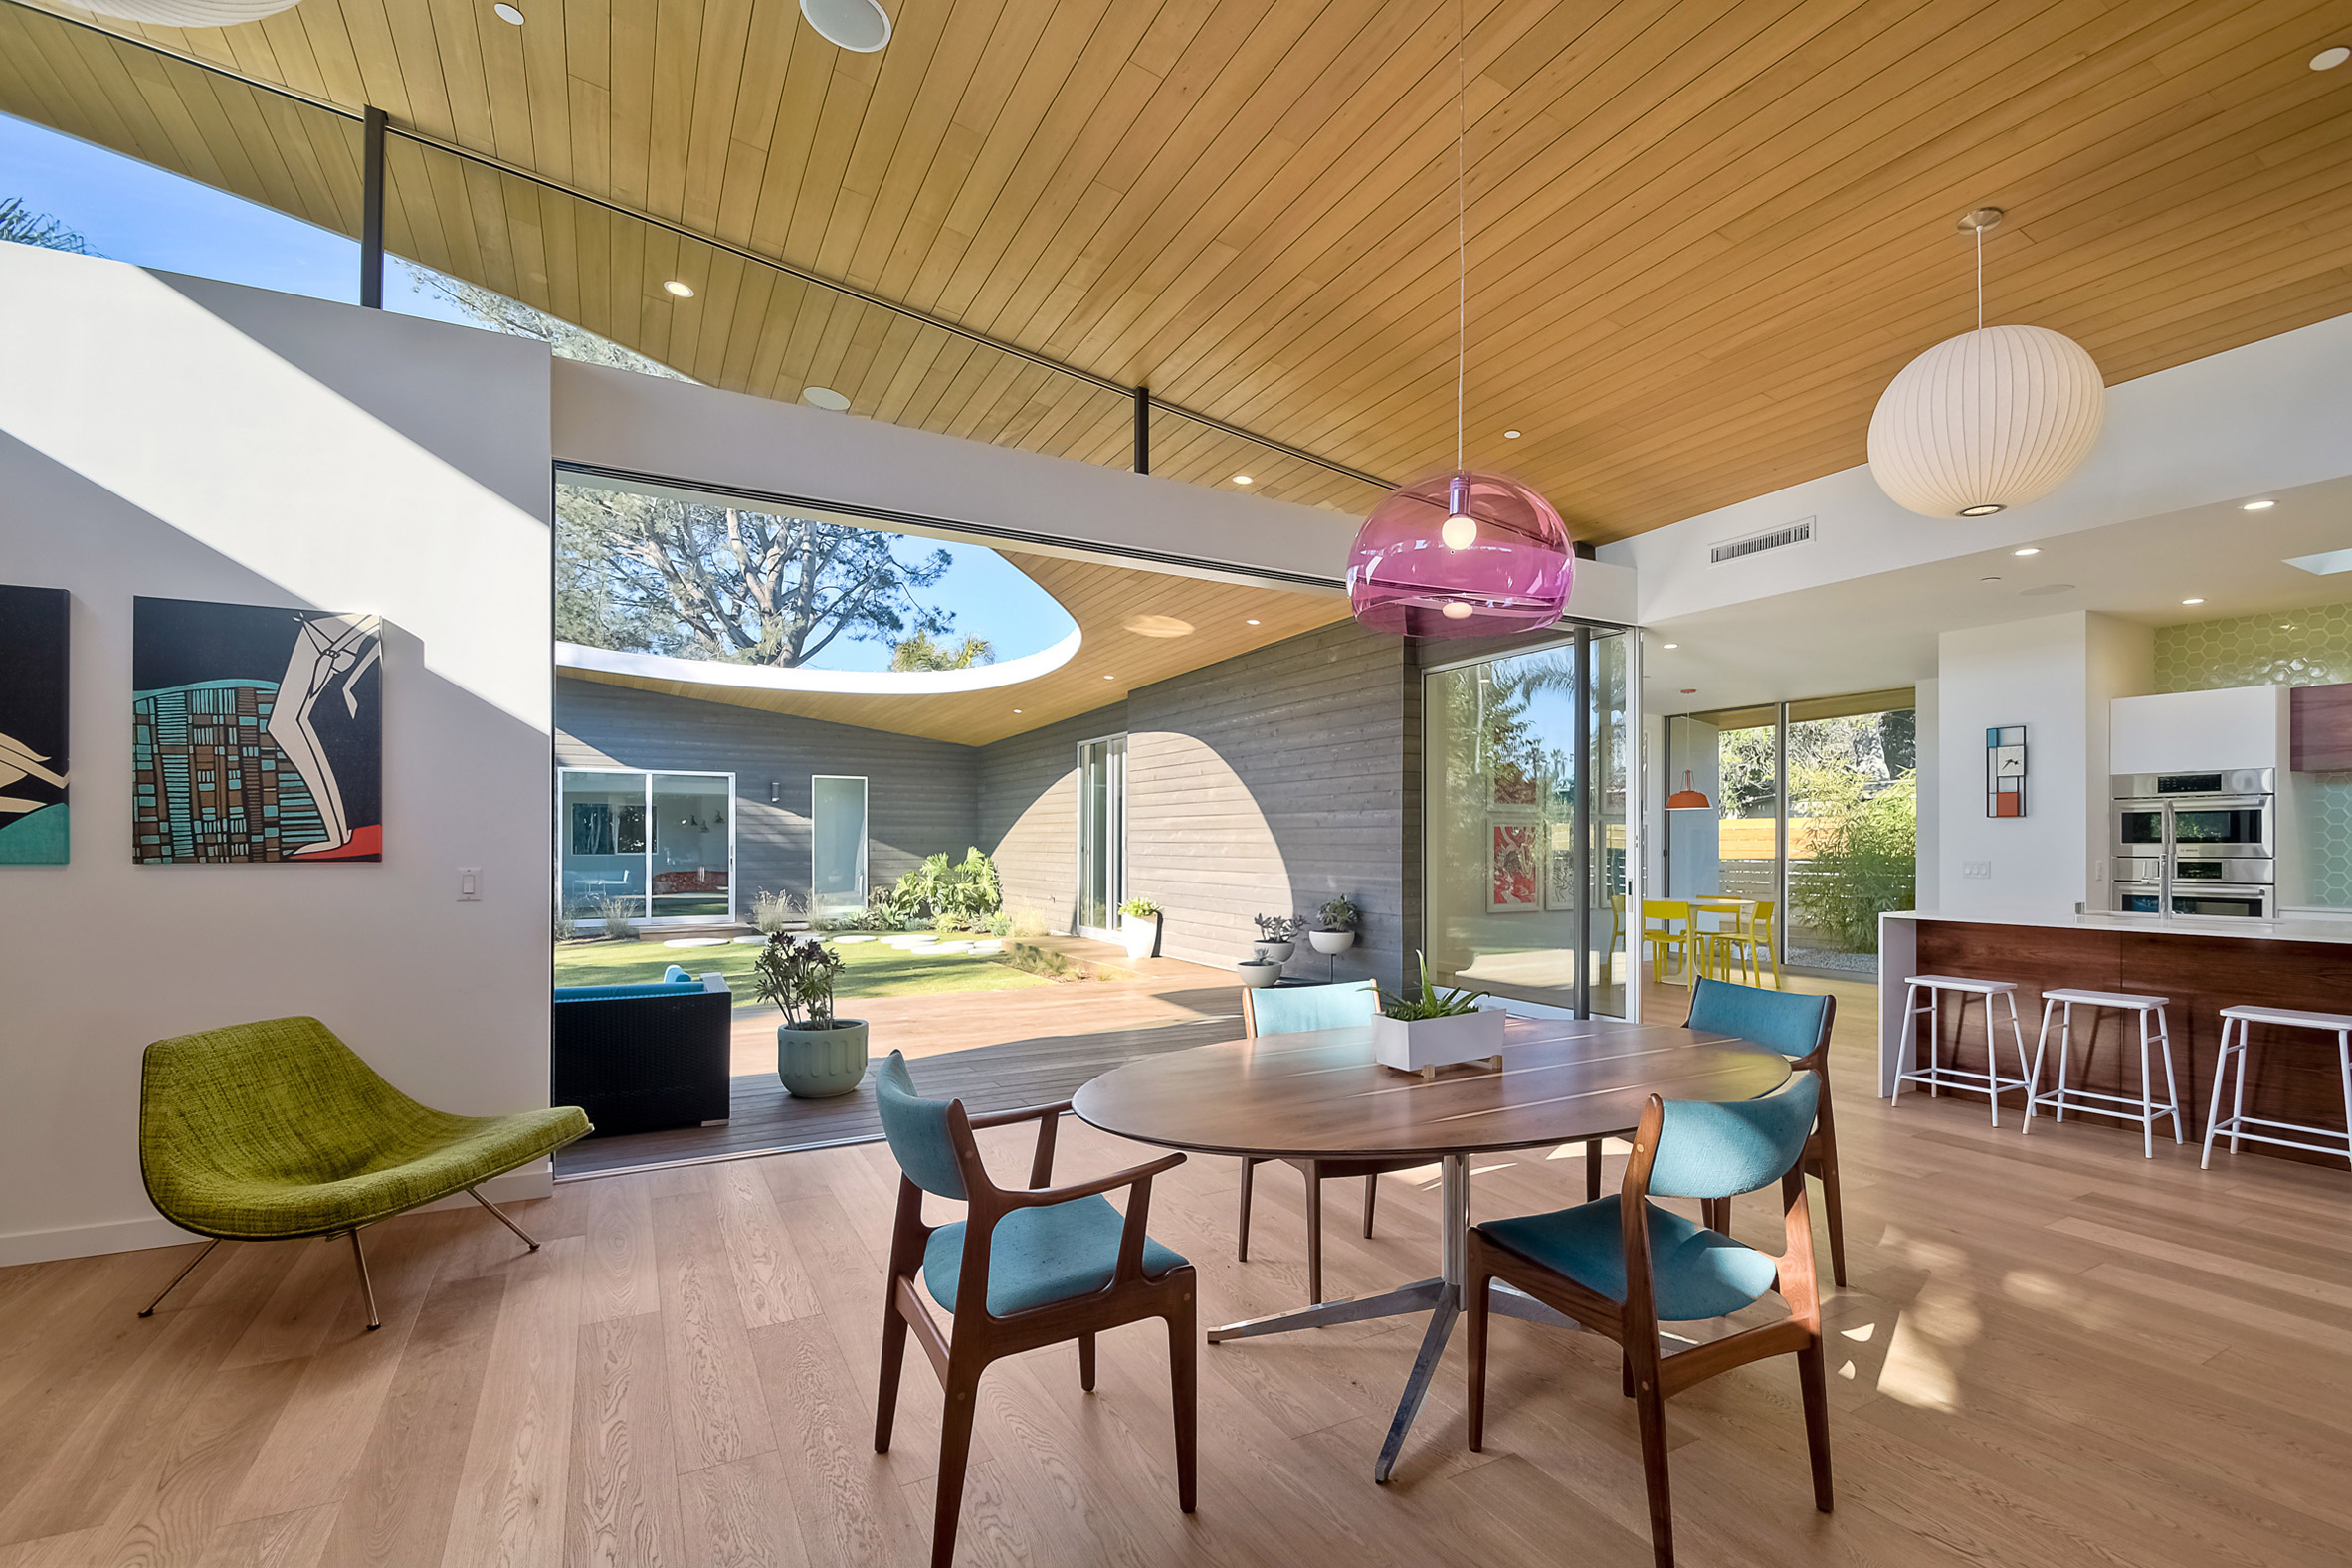 Avocado Acres House in California by Surfside Projects and Lloyd Russell